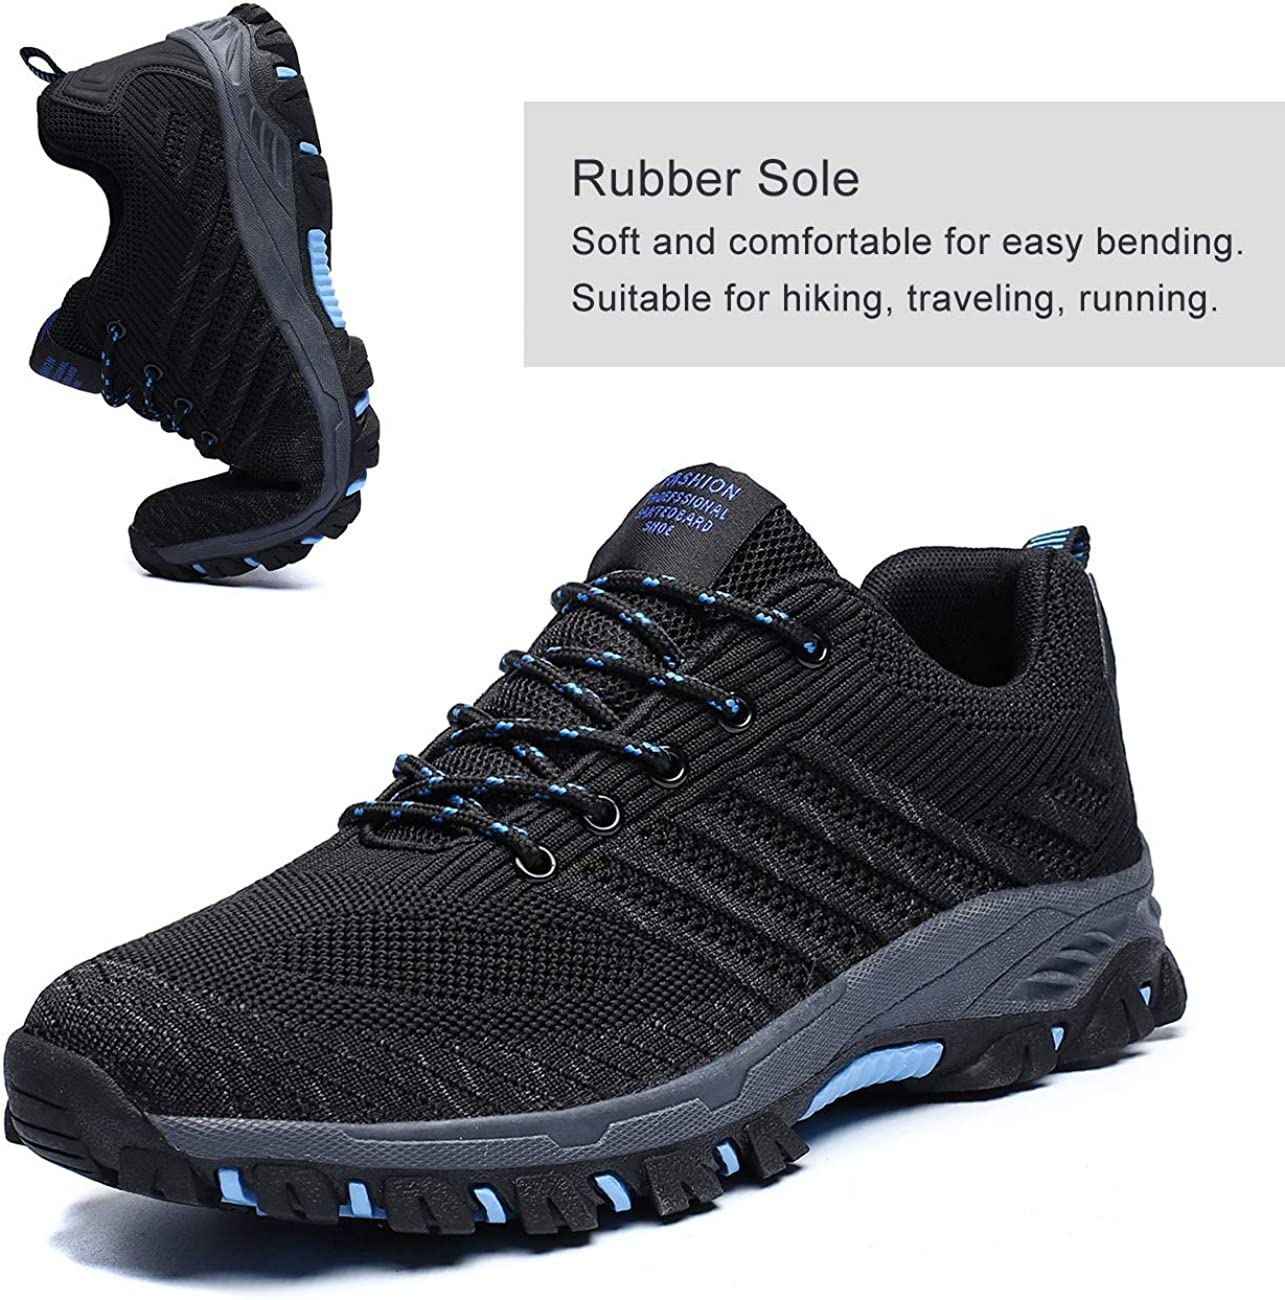 Chopben Mens Running Shoes Fashion Breathable Cushioning Trail Sneakers Lightweight Tennis Sport Casual Walking Athletic for Men Outdoor